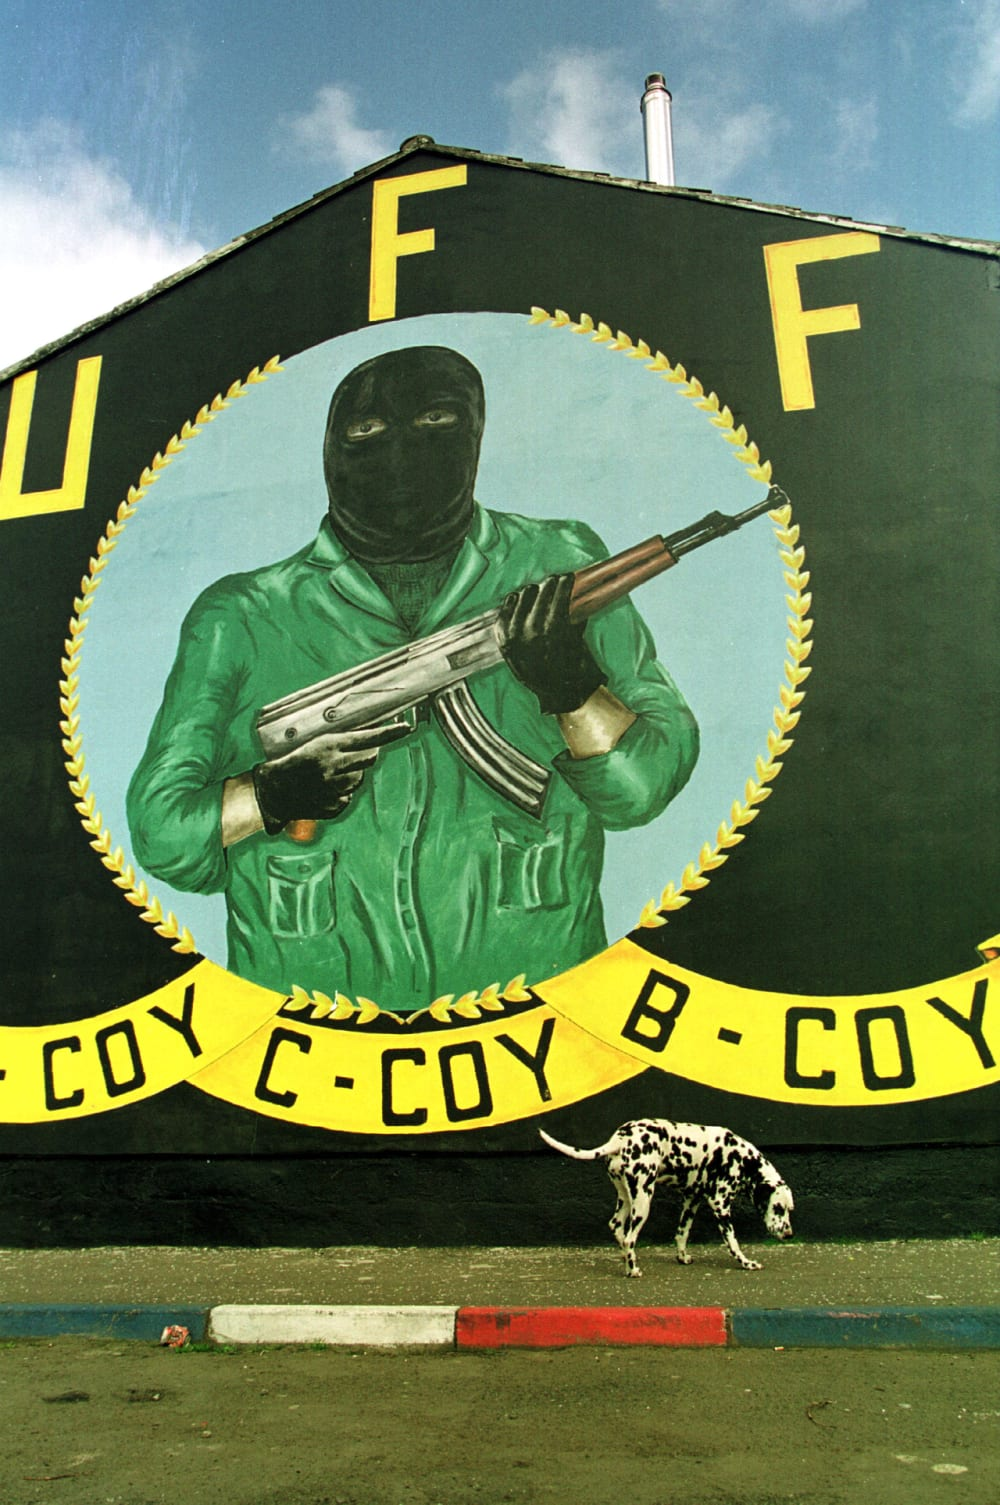 10. THE ULSTER FREEDOM FIGHTERS ARE OUTLAWED.